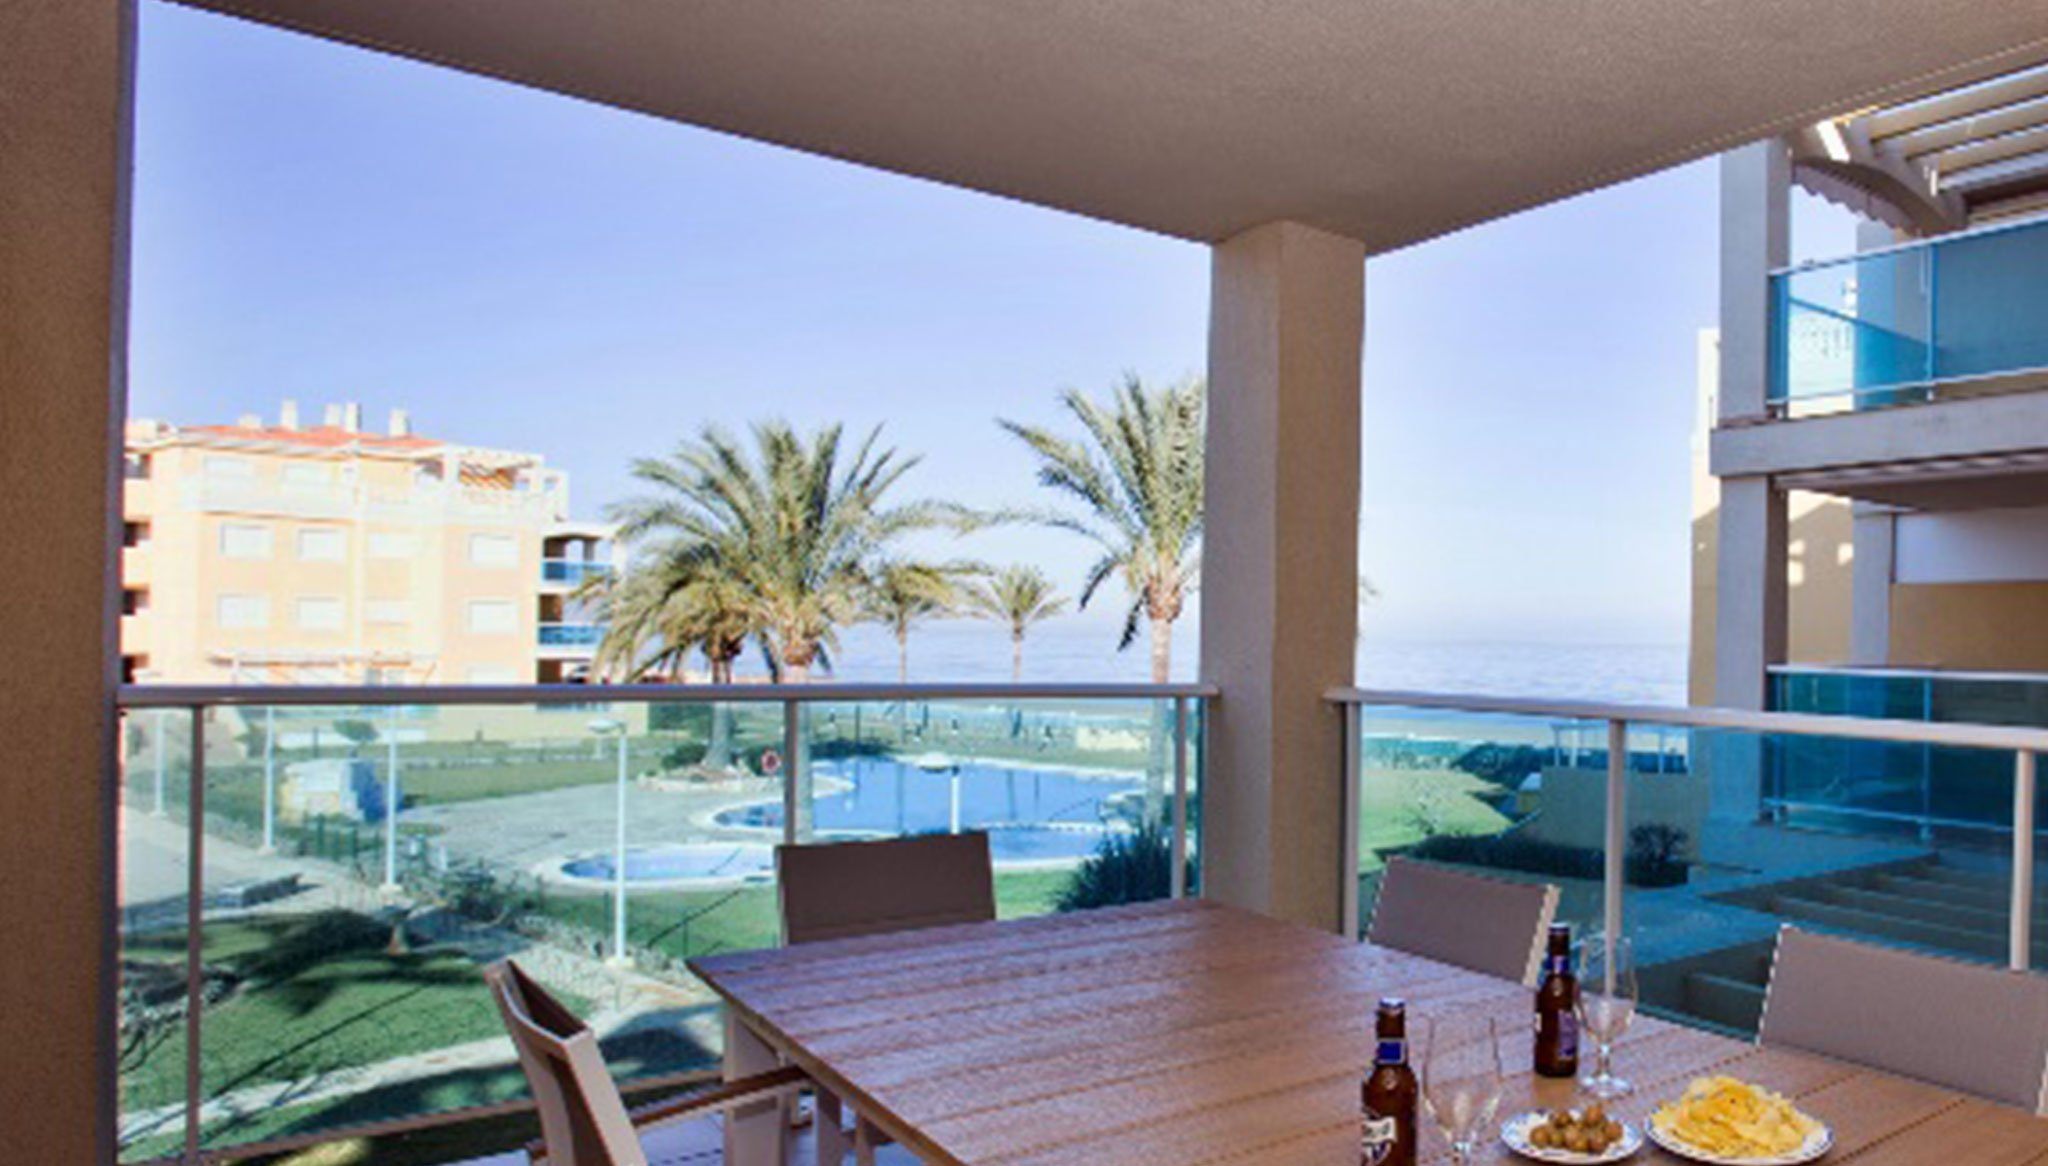 Views from the terrace of an apartment on the beach for rent in Dénia - Deniasol